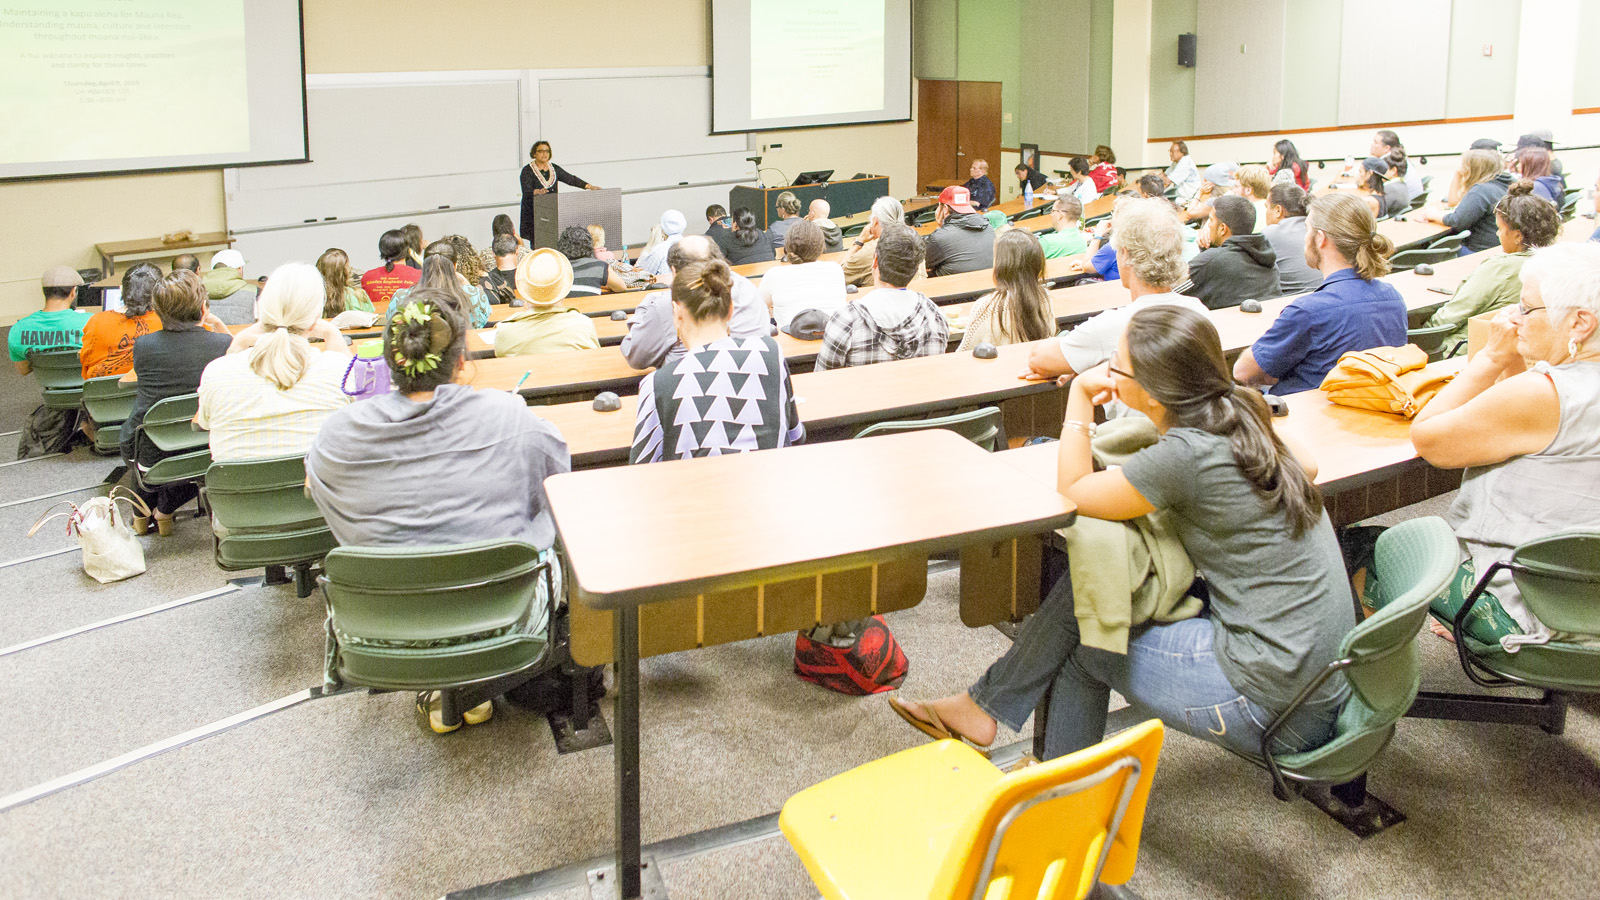 Ngahiraka Mason speaks to students in tiered lecture hall.